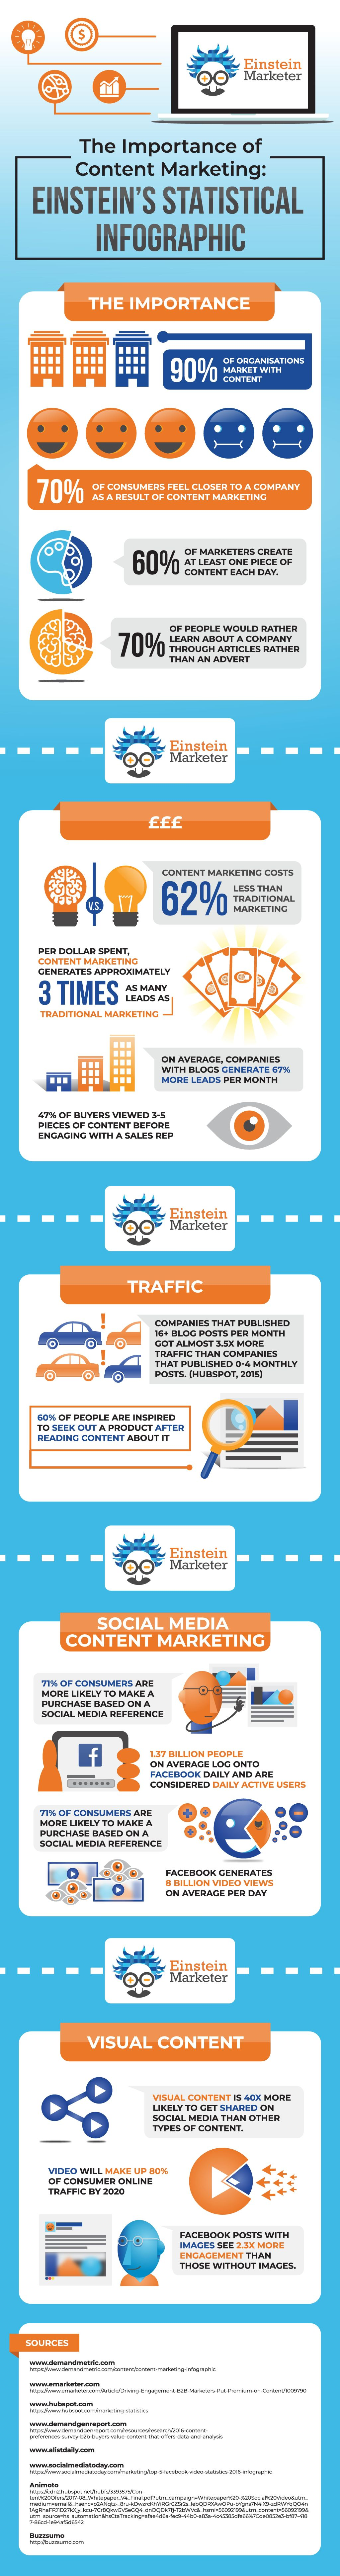 Content Marketing infographic statistics and numbers